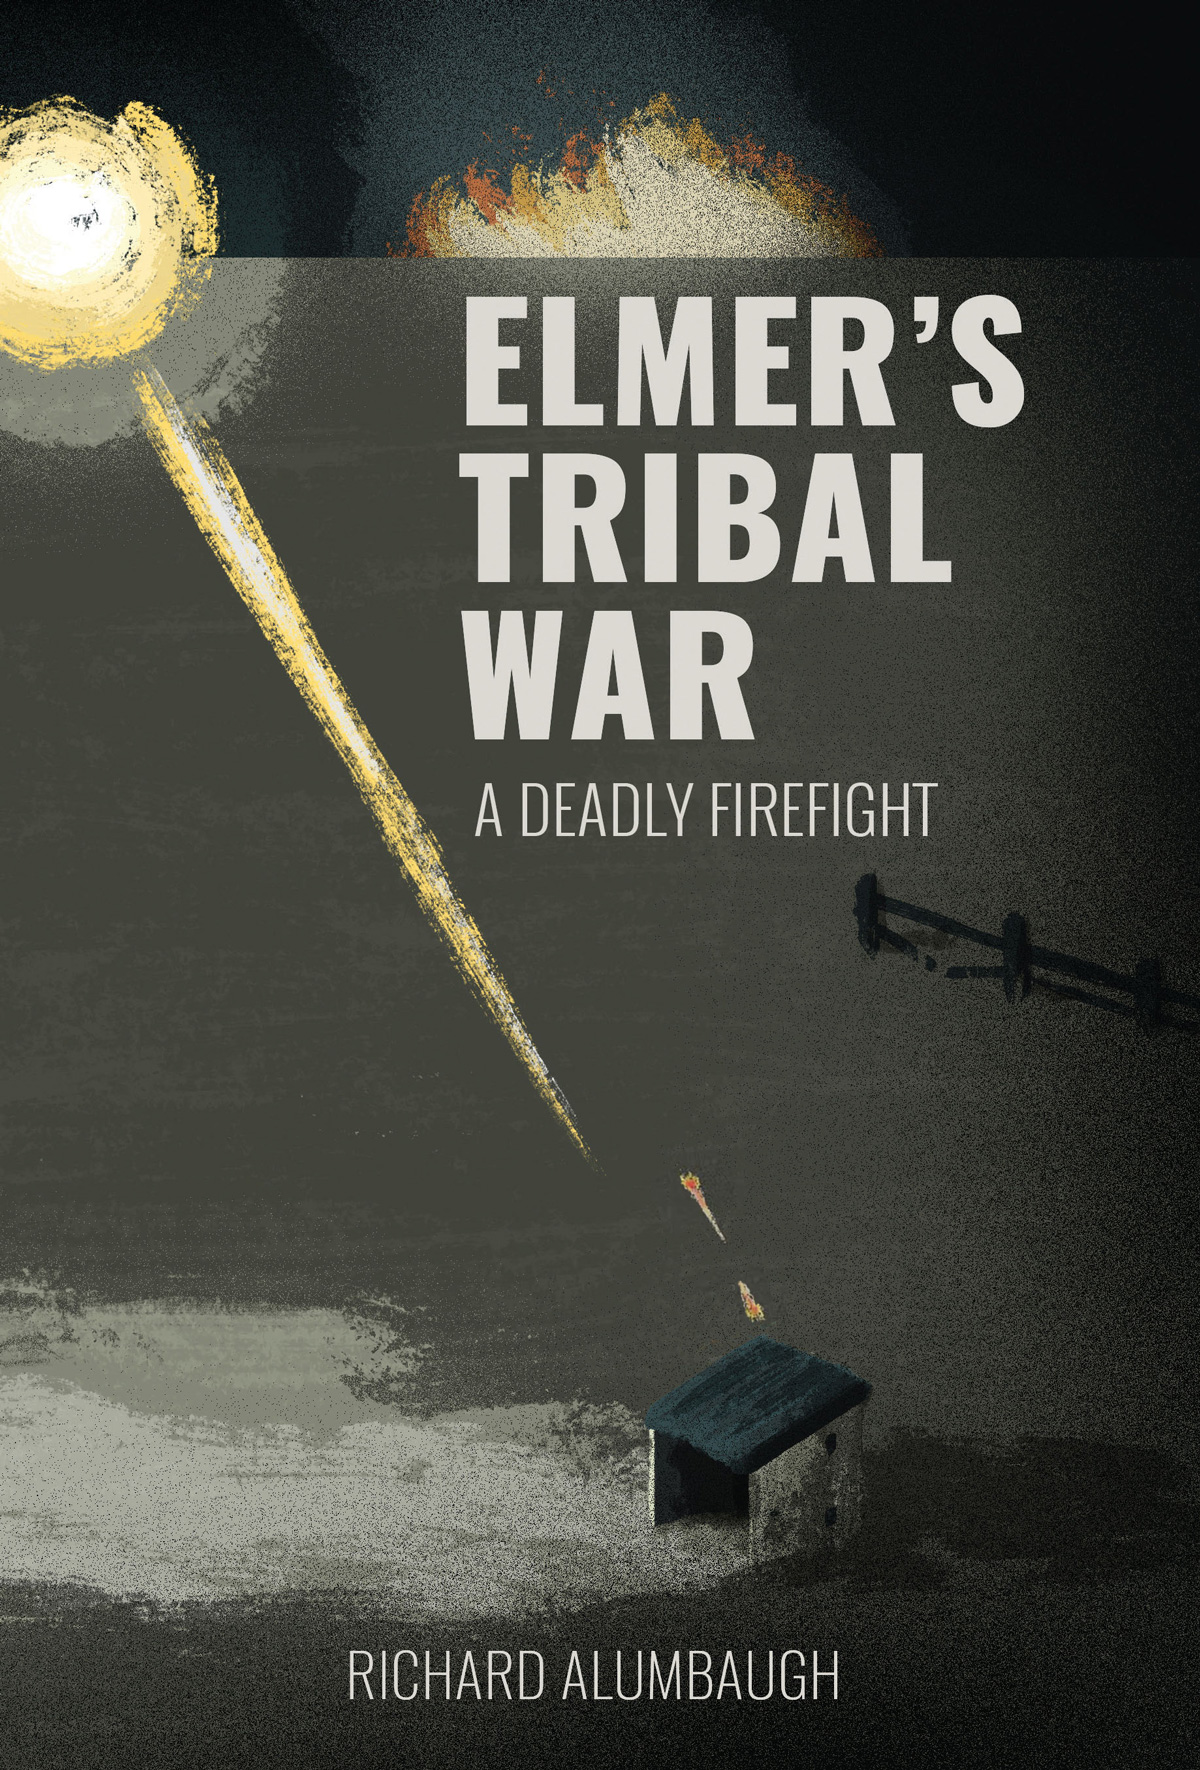 Elmer's Tribal War